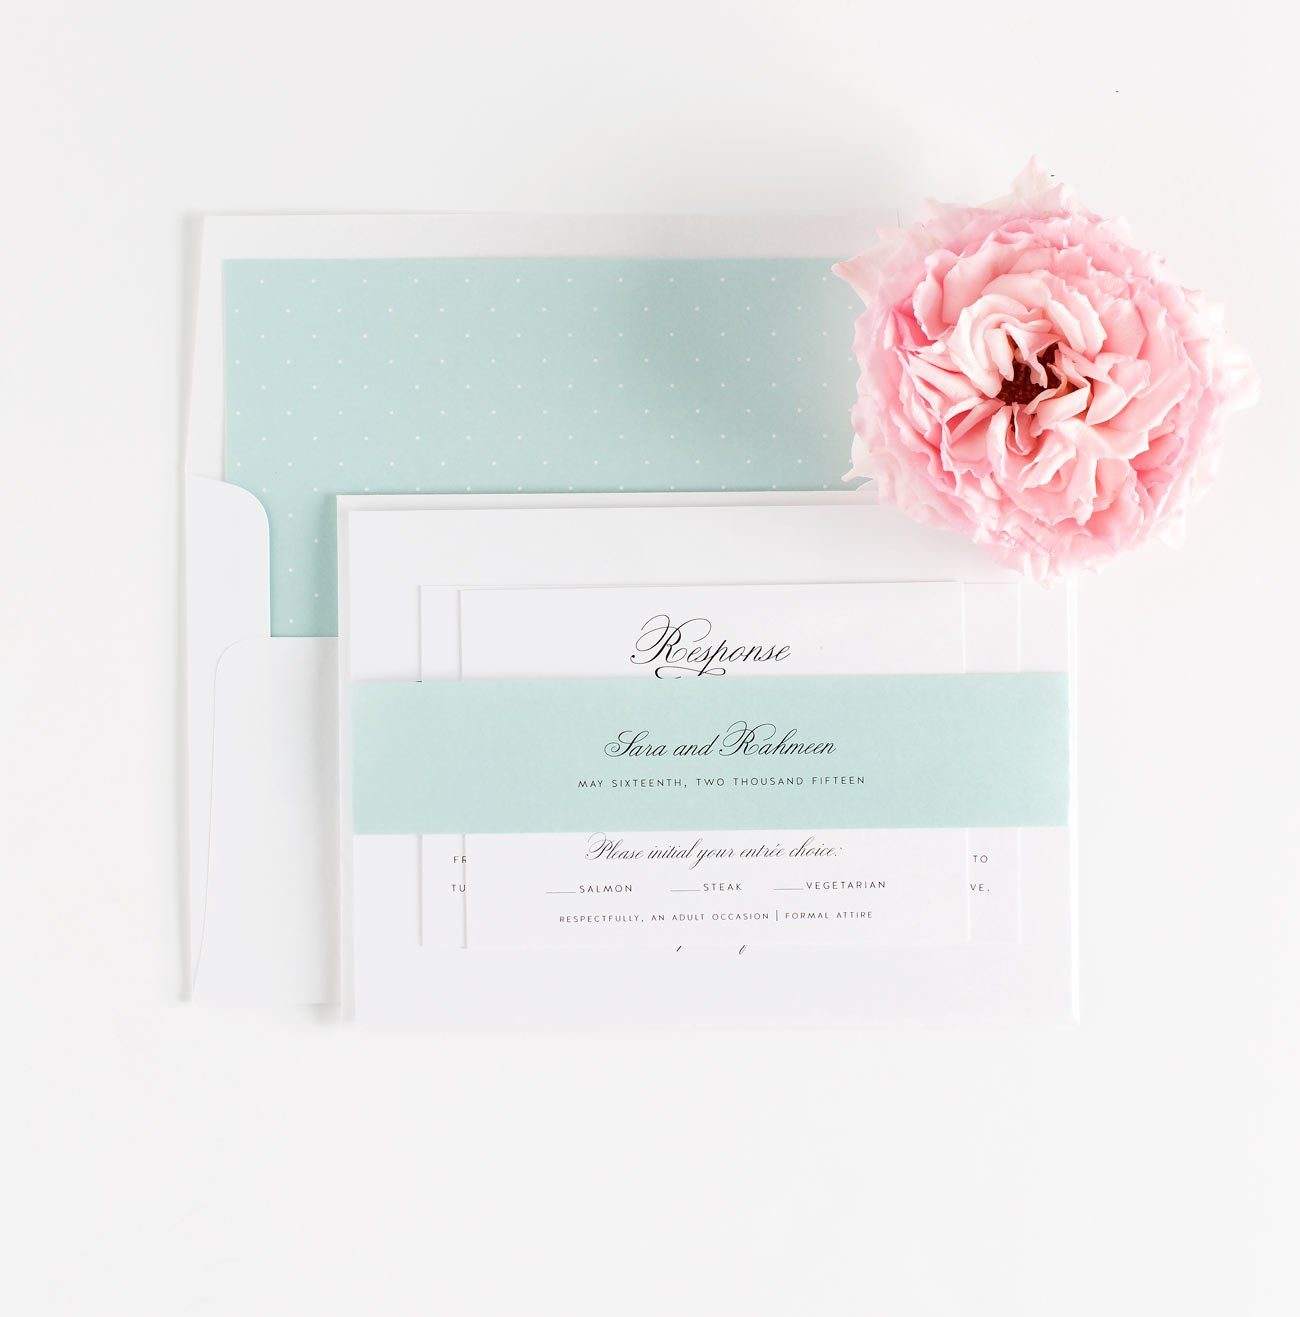 Vintage Wedding Invitations in Mint